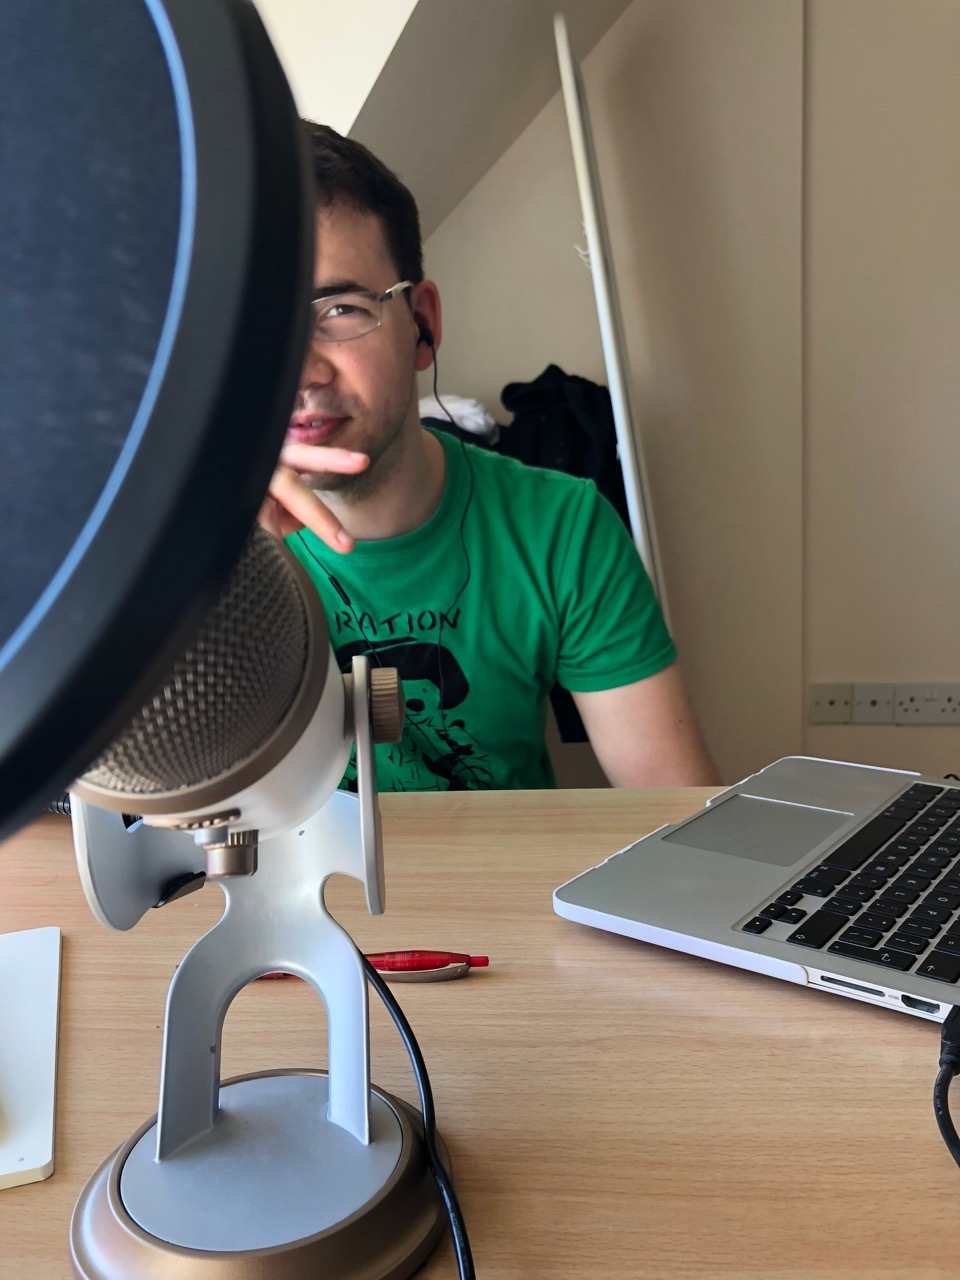 Half of Sam's head and body, partly obscured by the microphone. It's my view of him and the desk while we're recording.